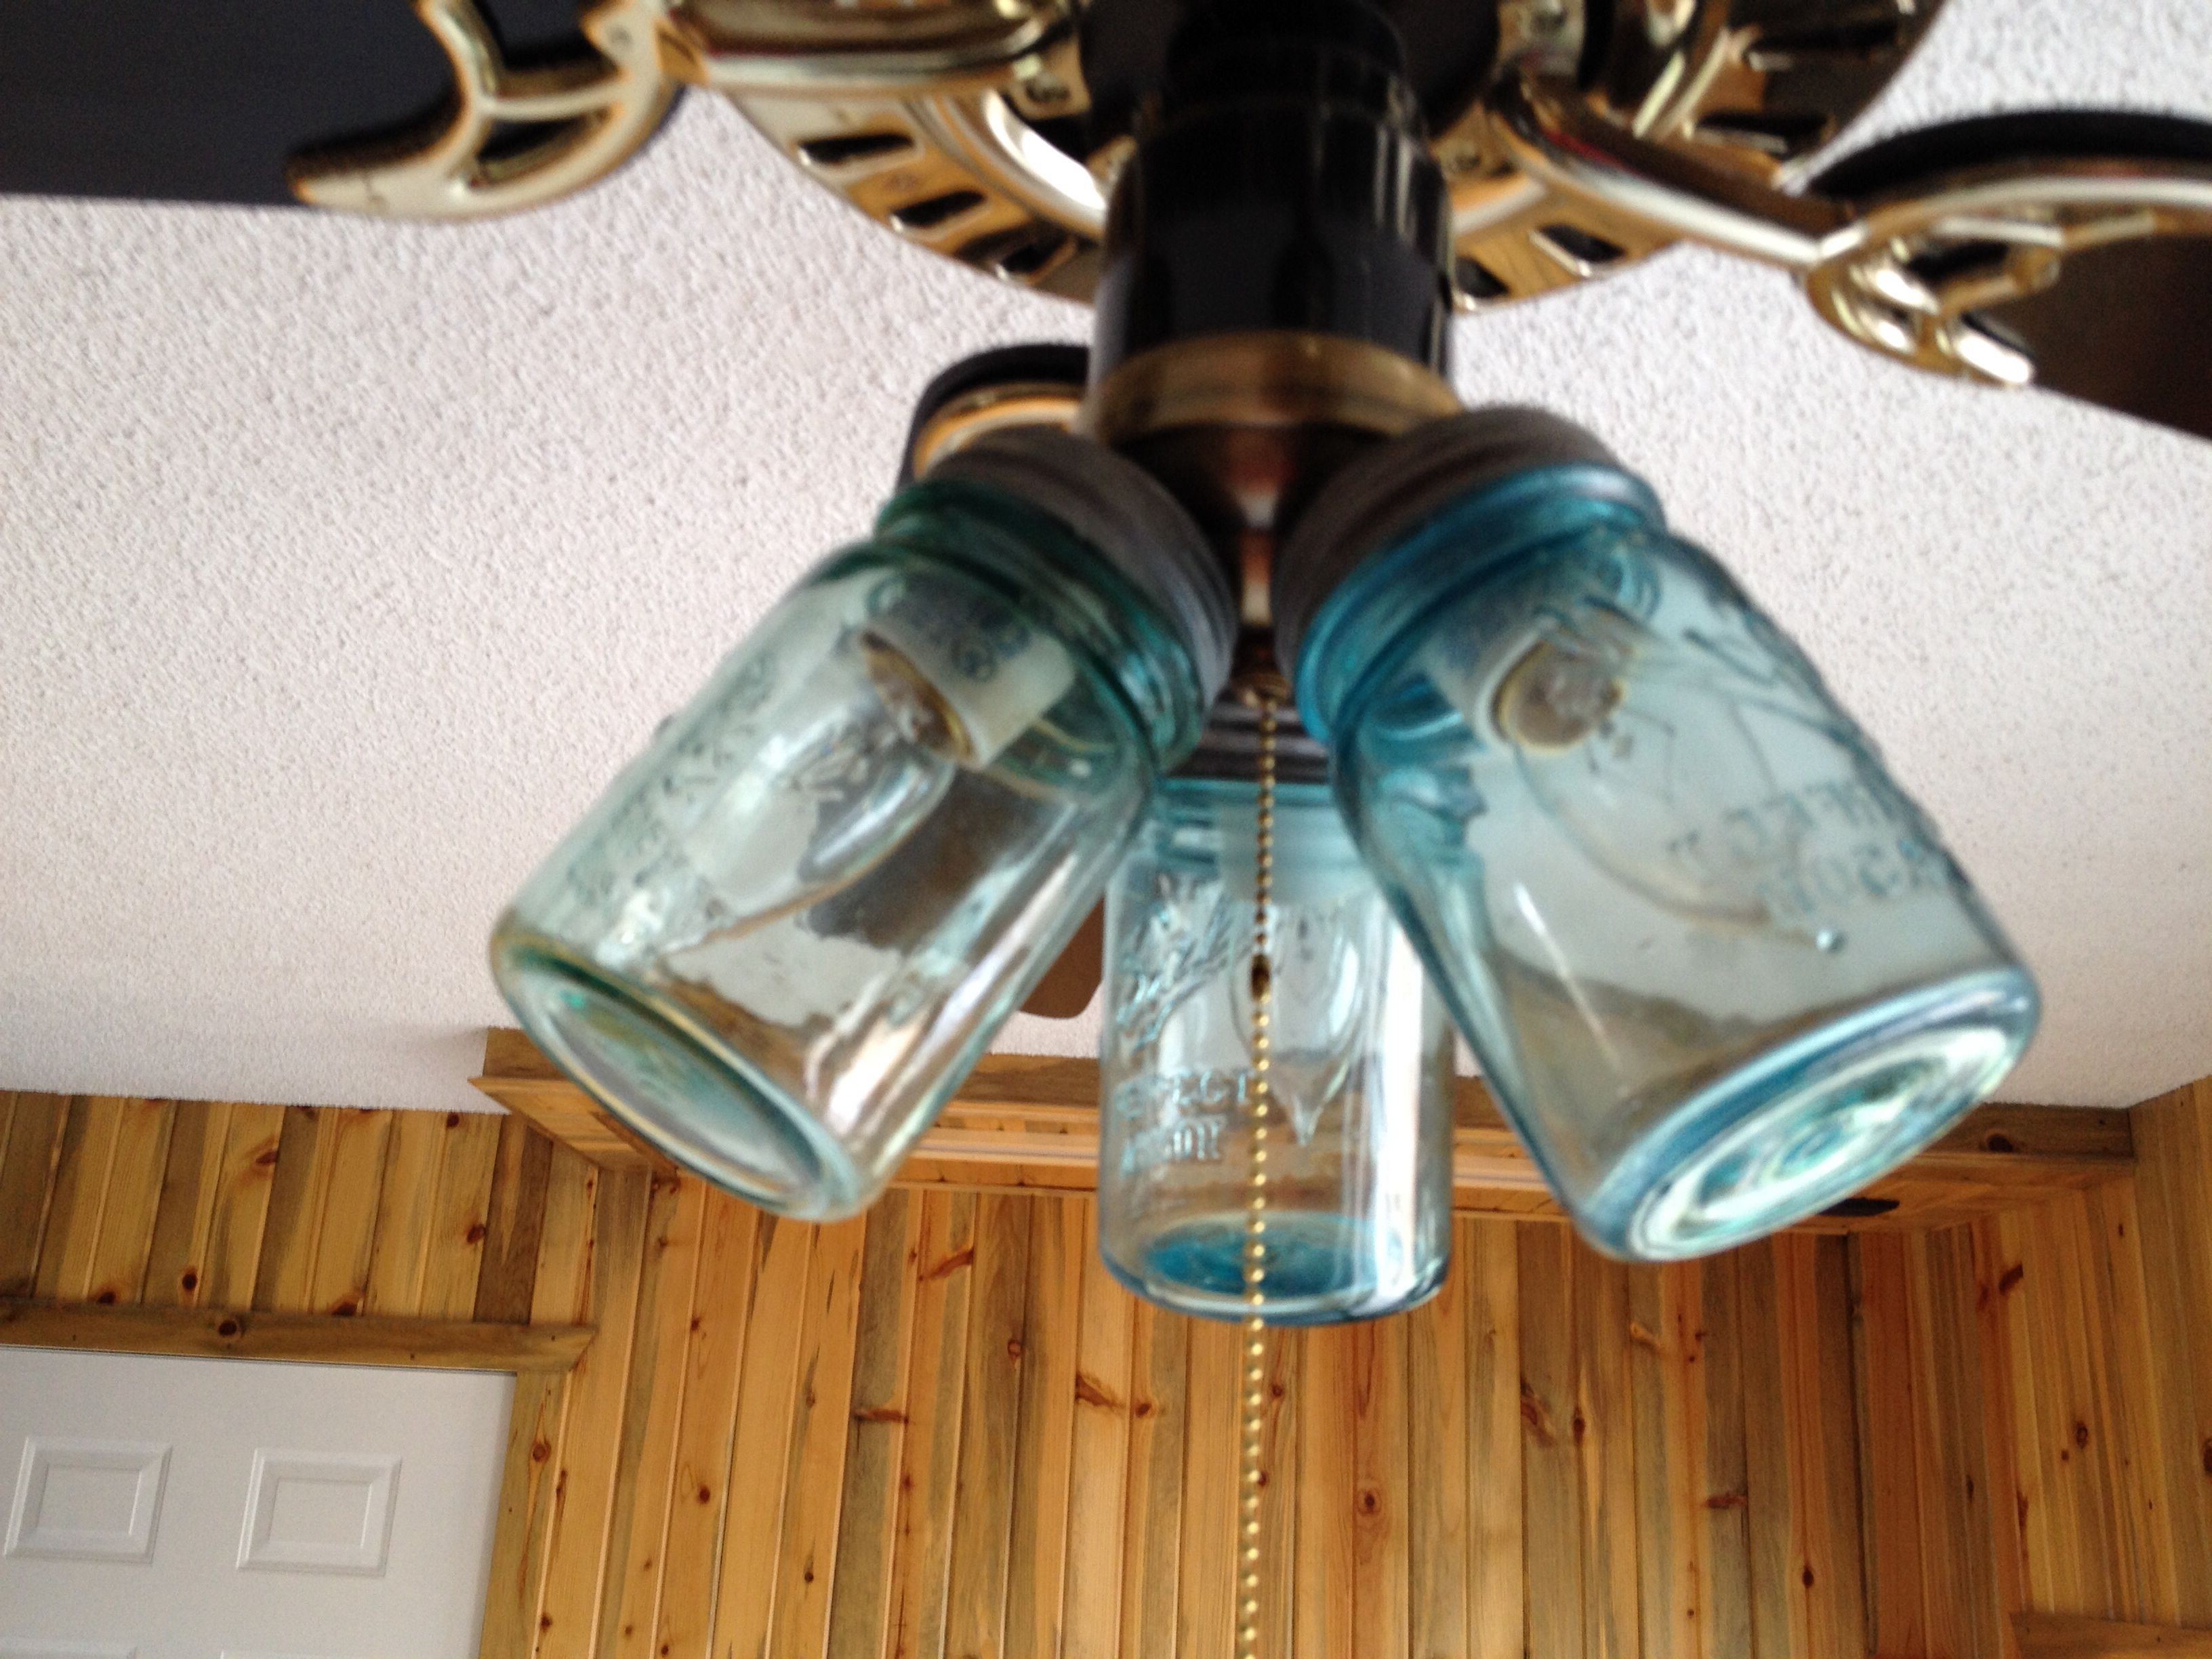 Pinterest Regarding Outdoor Ceiling Fans With Mason Jar Lights (View 18 of 20)